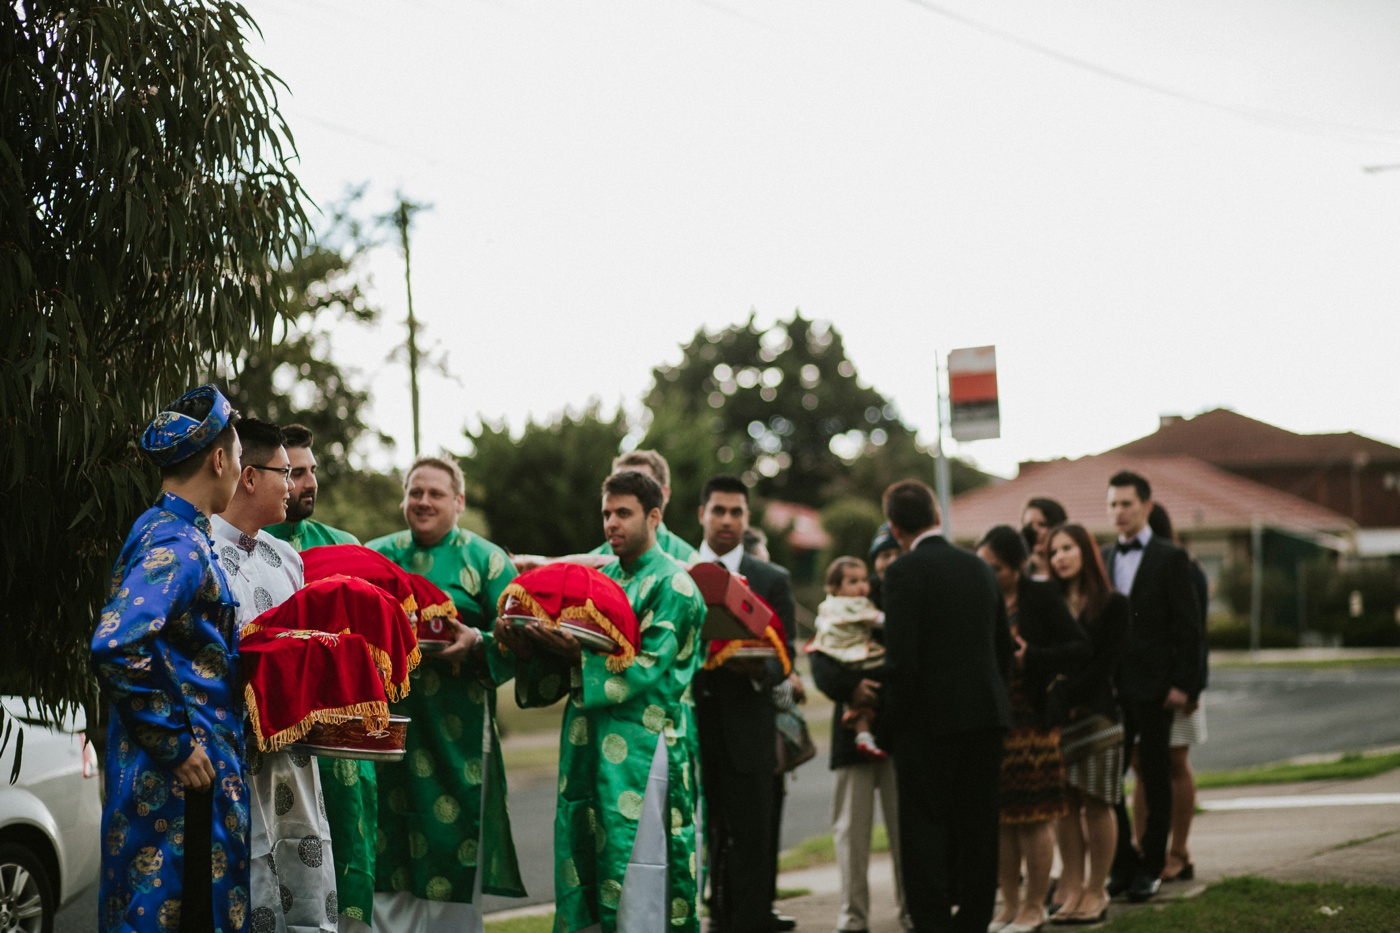 annie-kenneth_melbourne-cbd-candid-relaxed-wedding-photography_tea-ceremony_7